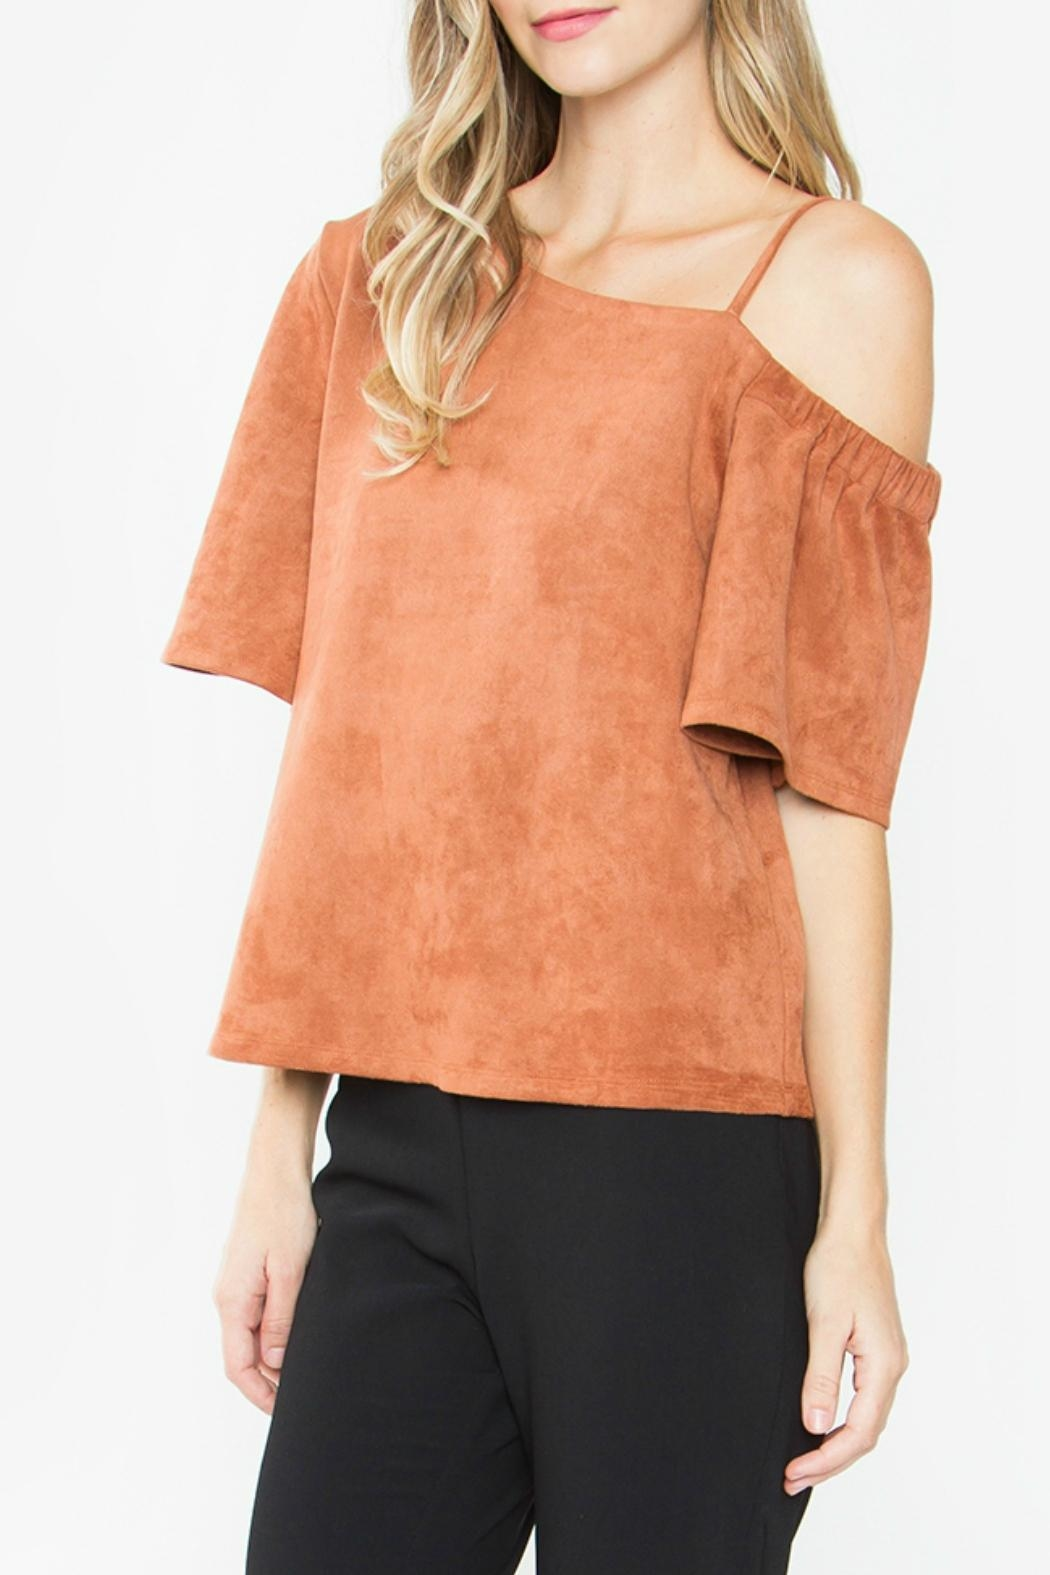 Sugar Lips Abiline Suede Top - Front Full Image